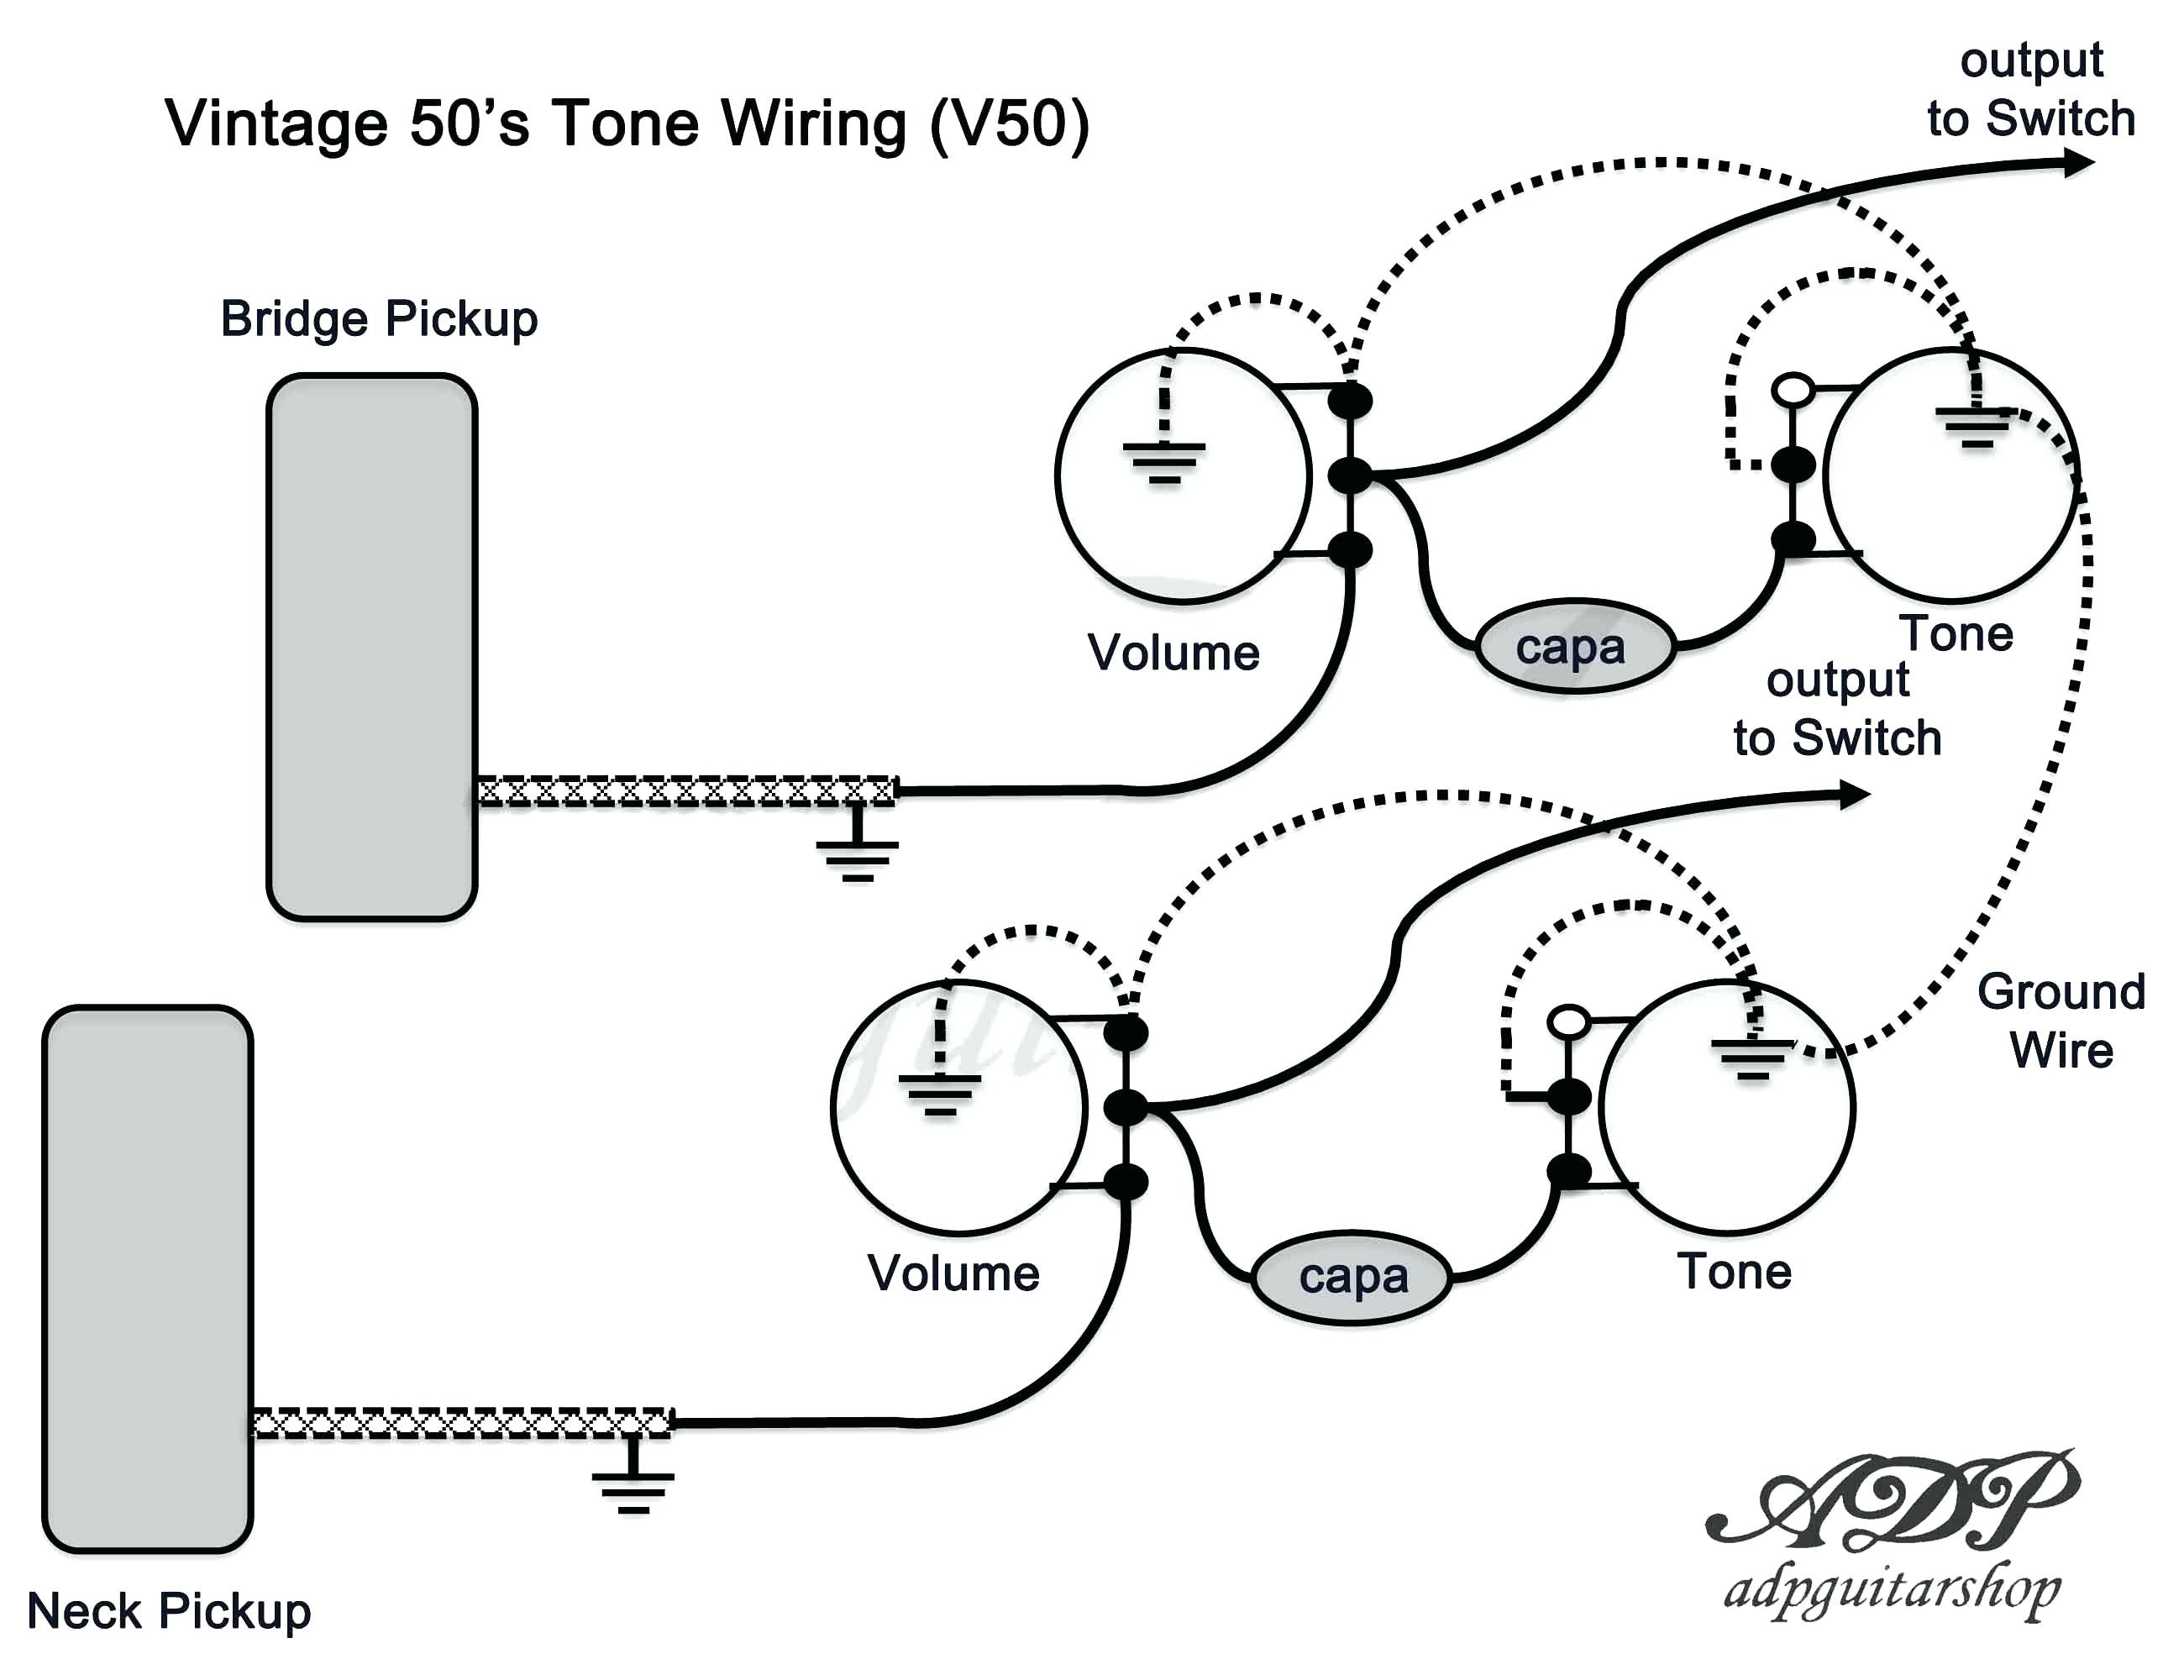 Gibson B Guitar Wiring Diagram | Wiring Diagram AutoVehicle on guitar switch wiring, guitar brands a-z, guitar repair tips, guitar wiring 101, guitar made out of a box, guitar circuit diagram, guitar jack wiring, guitar schematics, guitar dimensions, guitar tone control wiring, guitar on ground, guitar wiring theory, guitar wiring for dummies, guitar wiring harness, guitar wiring basics, guitar potentiometer wiring, guitar electronics wiring, guitar amp diagram, guitar parts diagram,